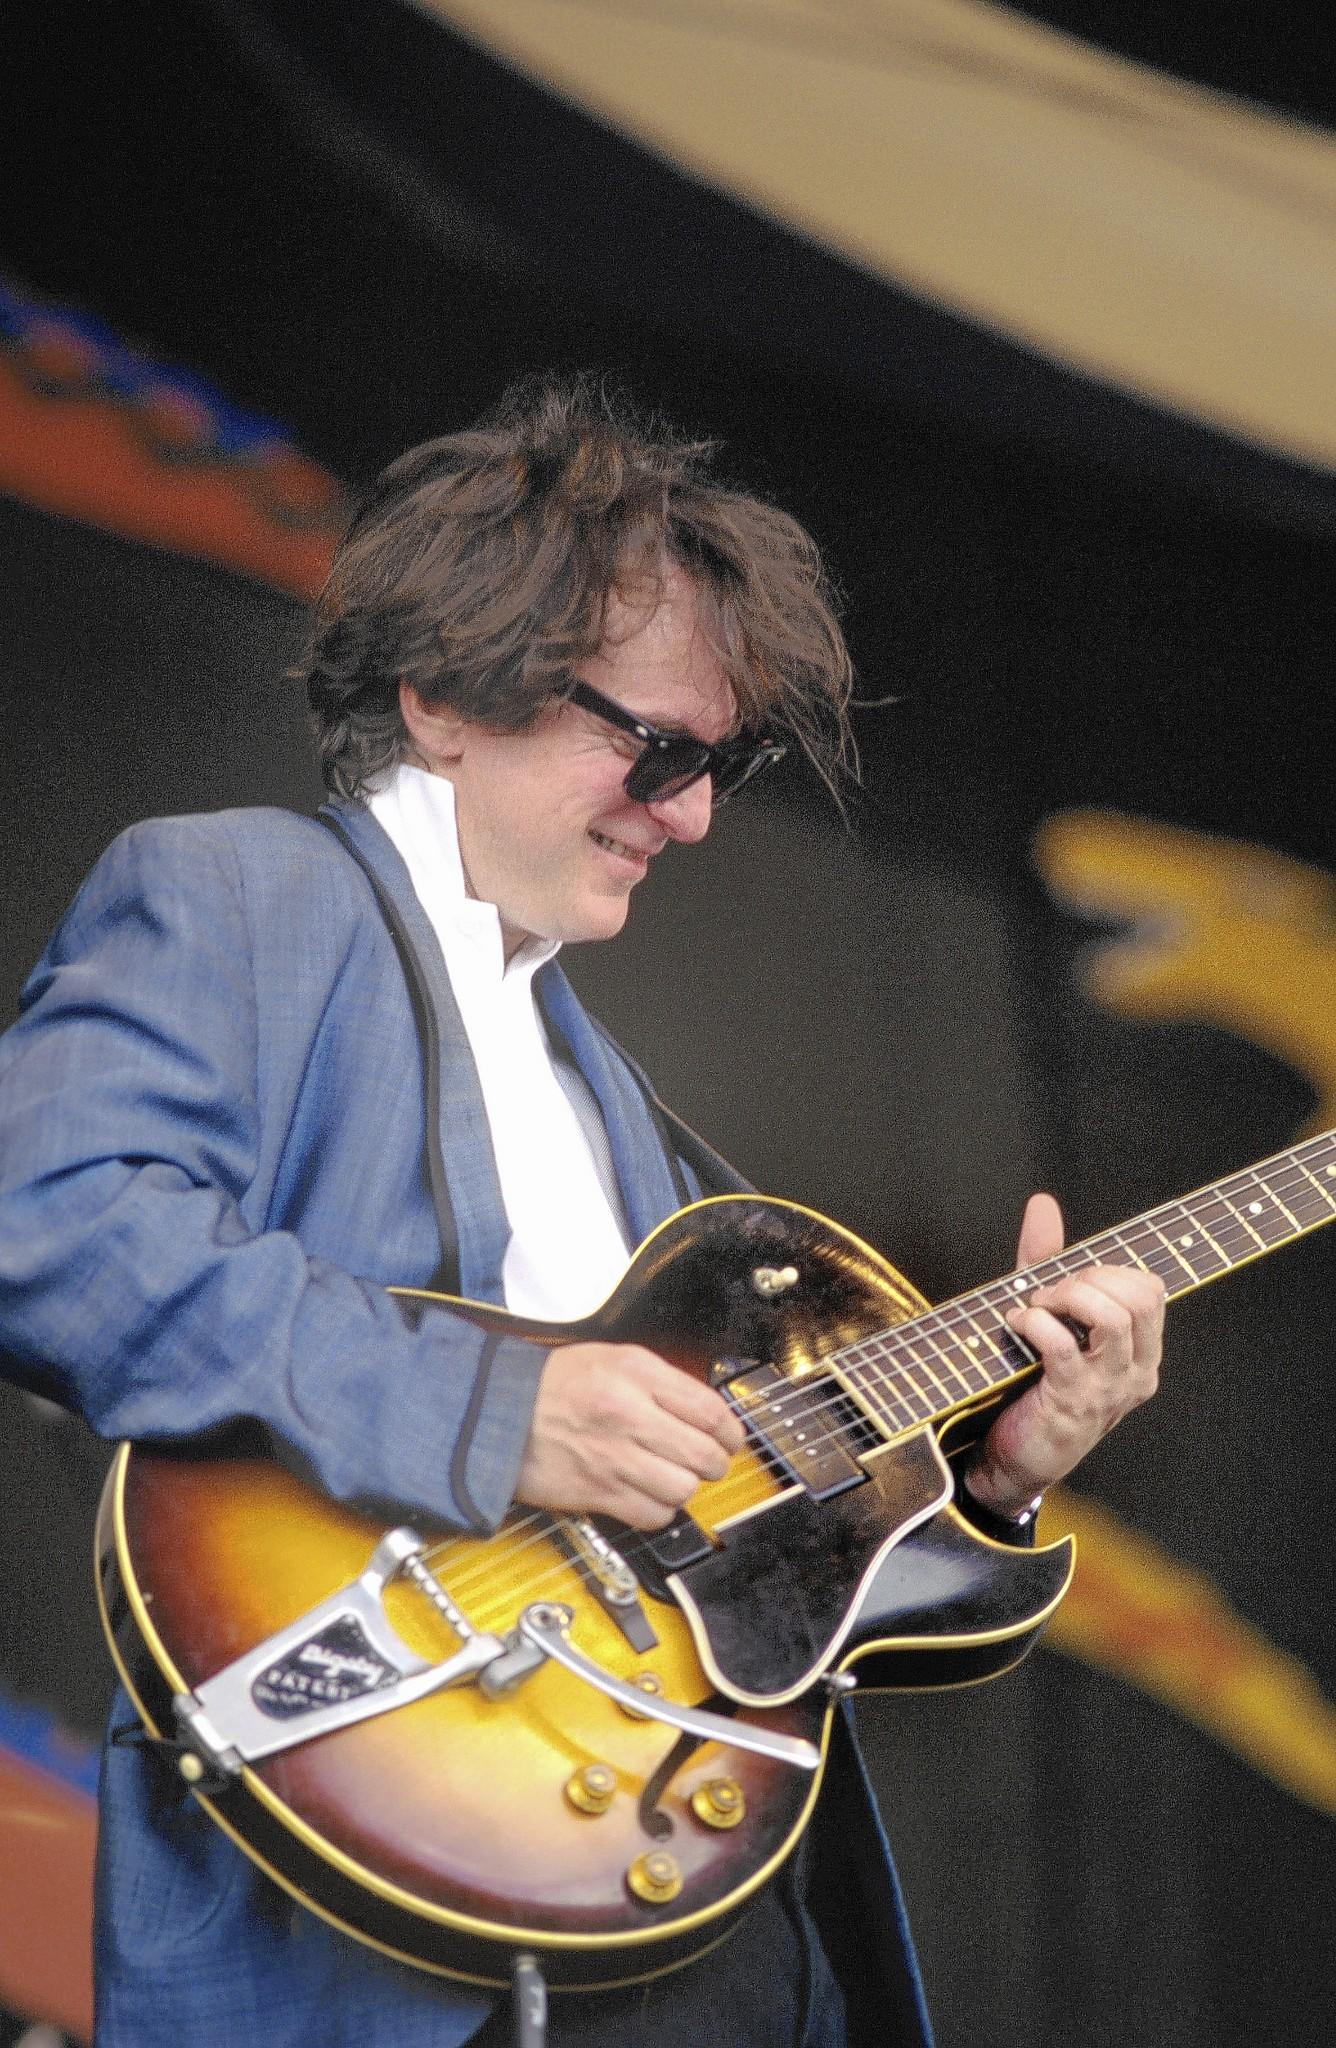 """Holly George-Warren's """"A Man Called Destruction"""" details the life of Big Star frontman Alex Chilton."""